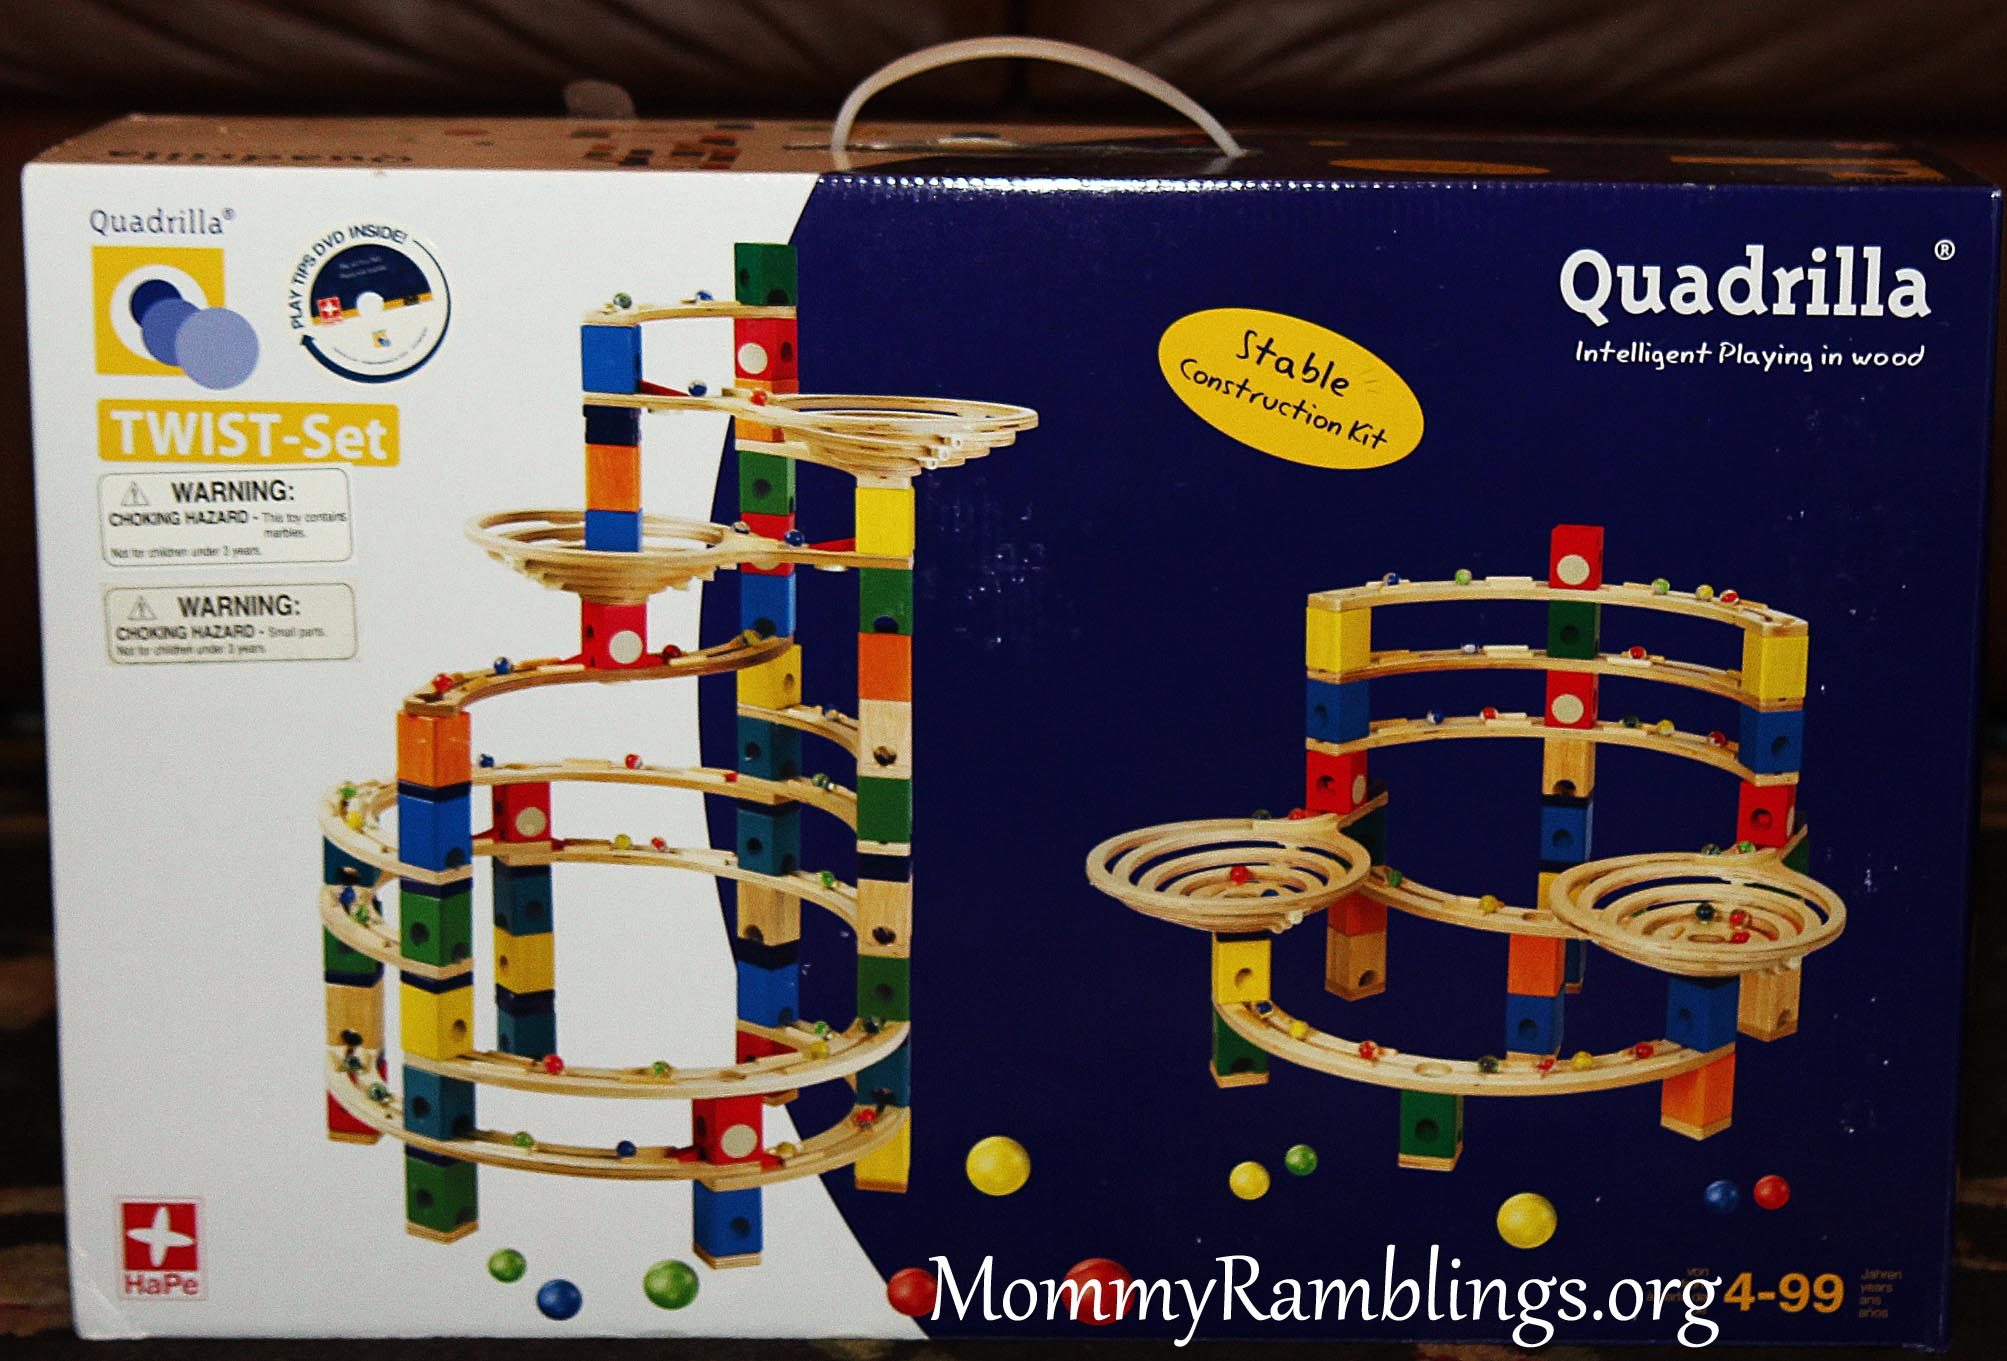 Hape Toys Quadrilla Twist Set Review And Bamboo Vehicle